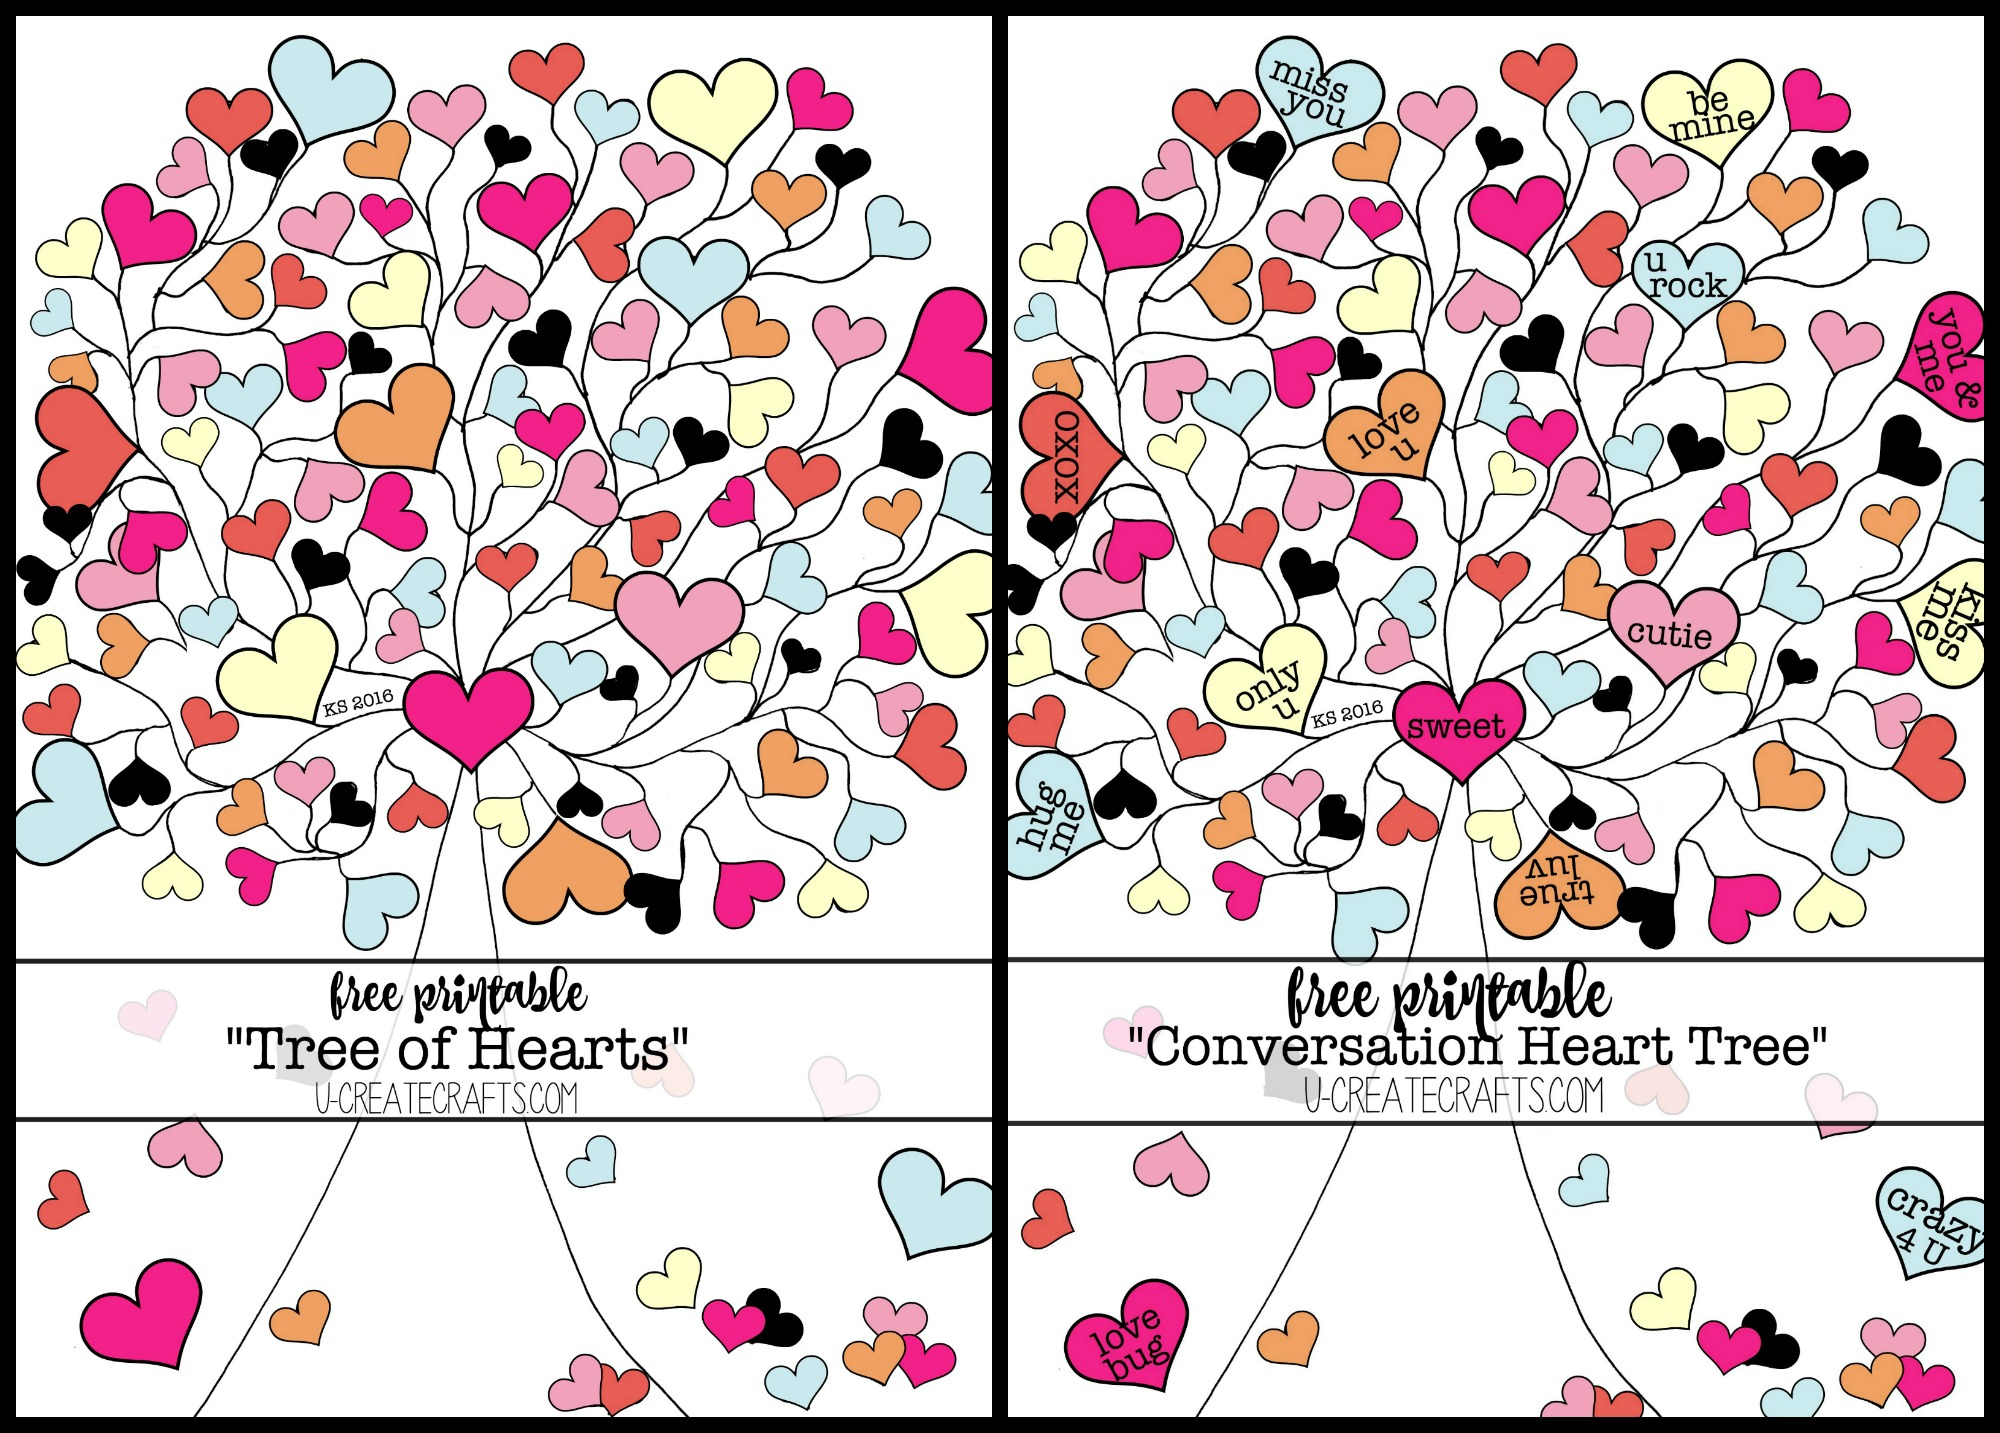 photograph relating to Printable Valentine Hearts identified as Valentine Communication Centre Tree Coloring Webpages - U Generate